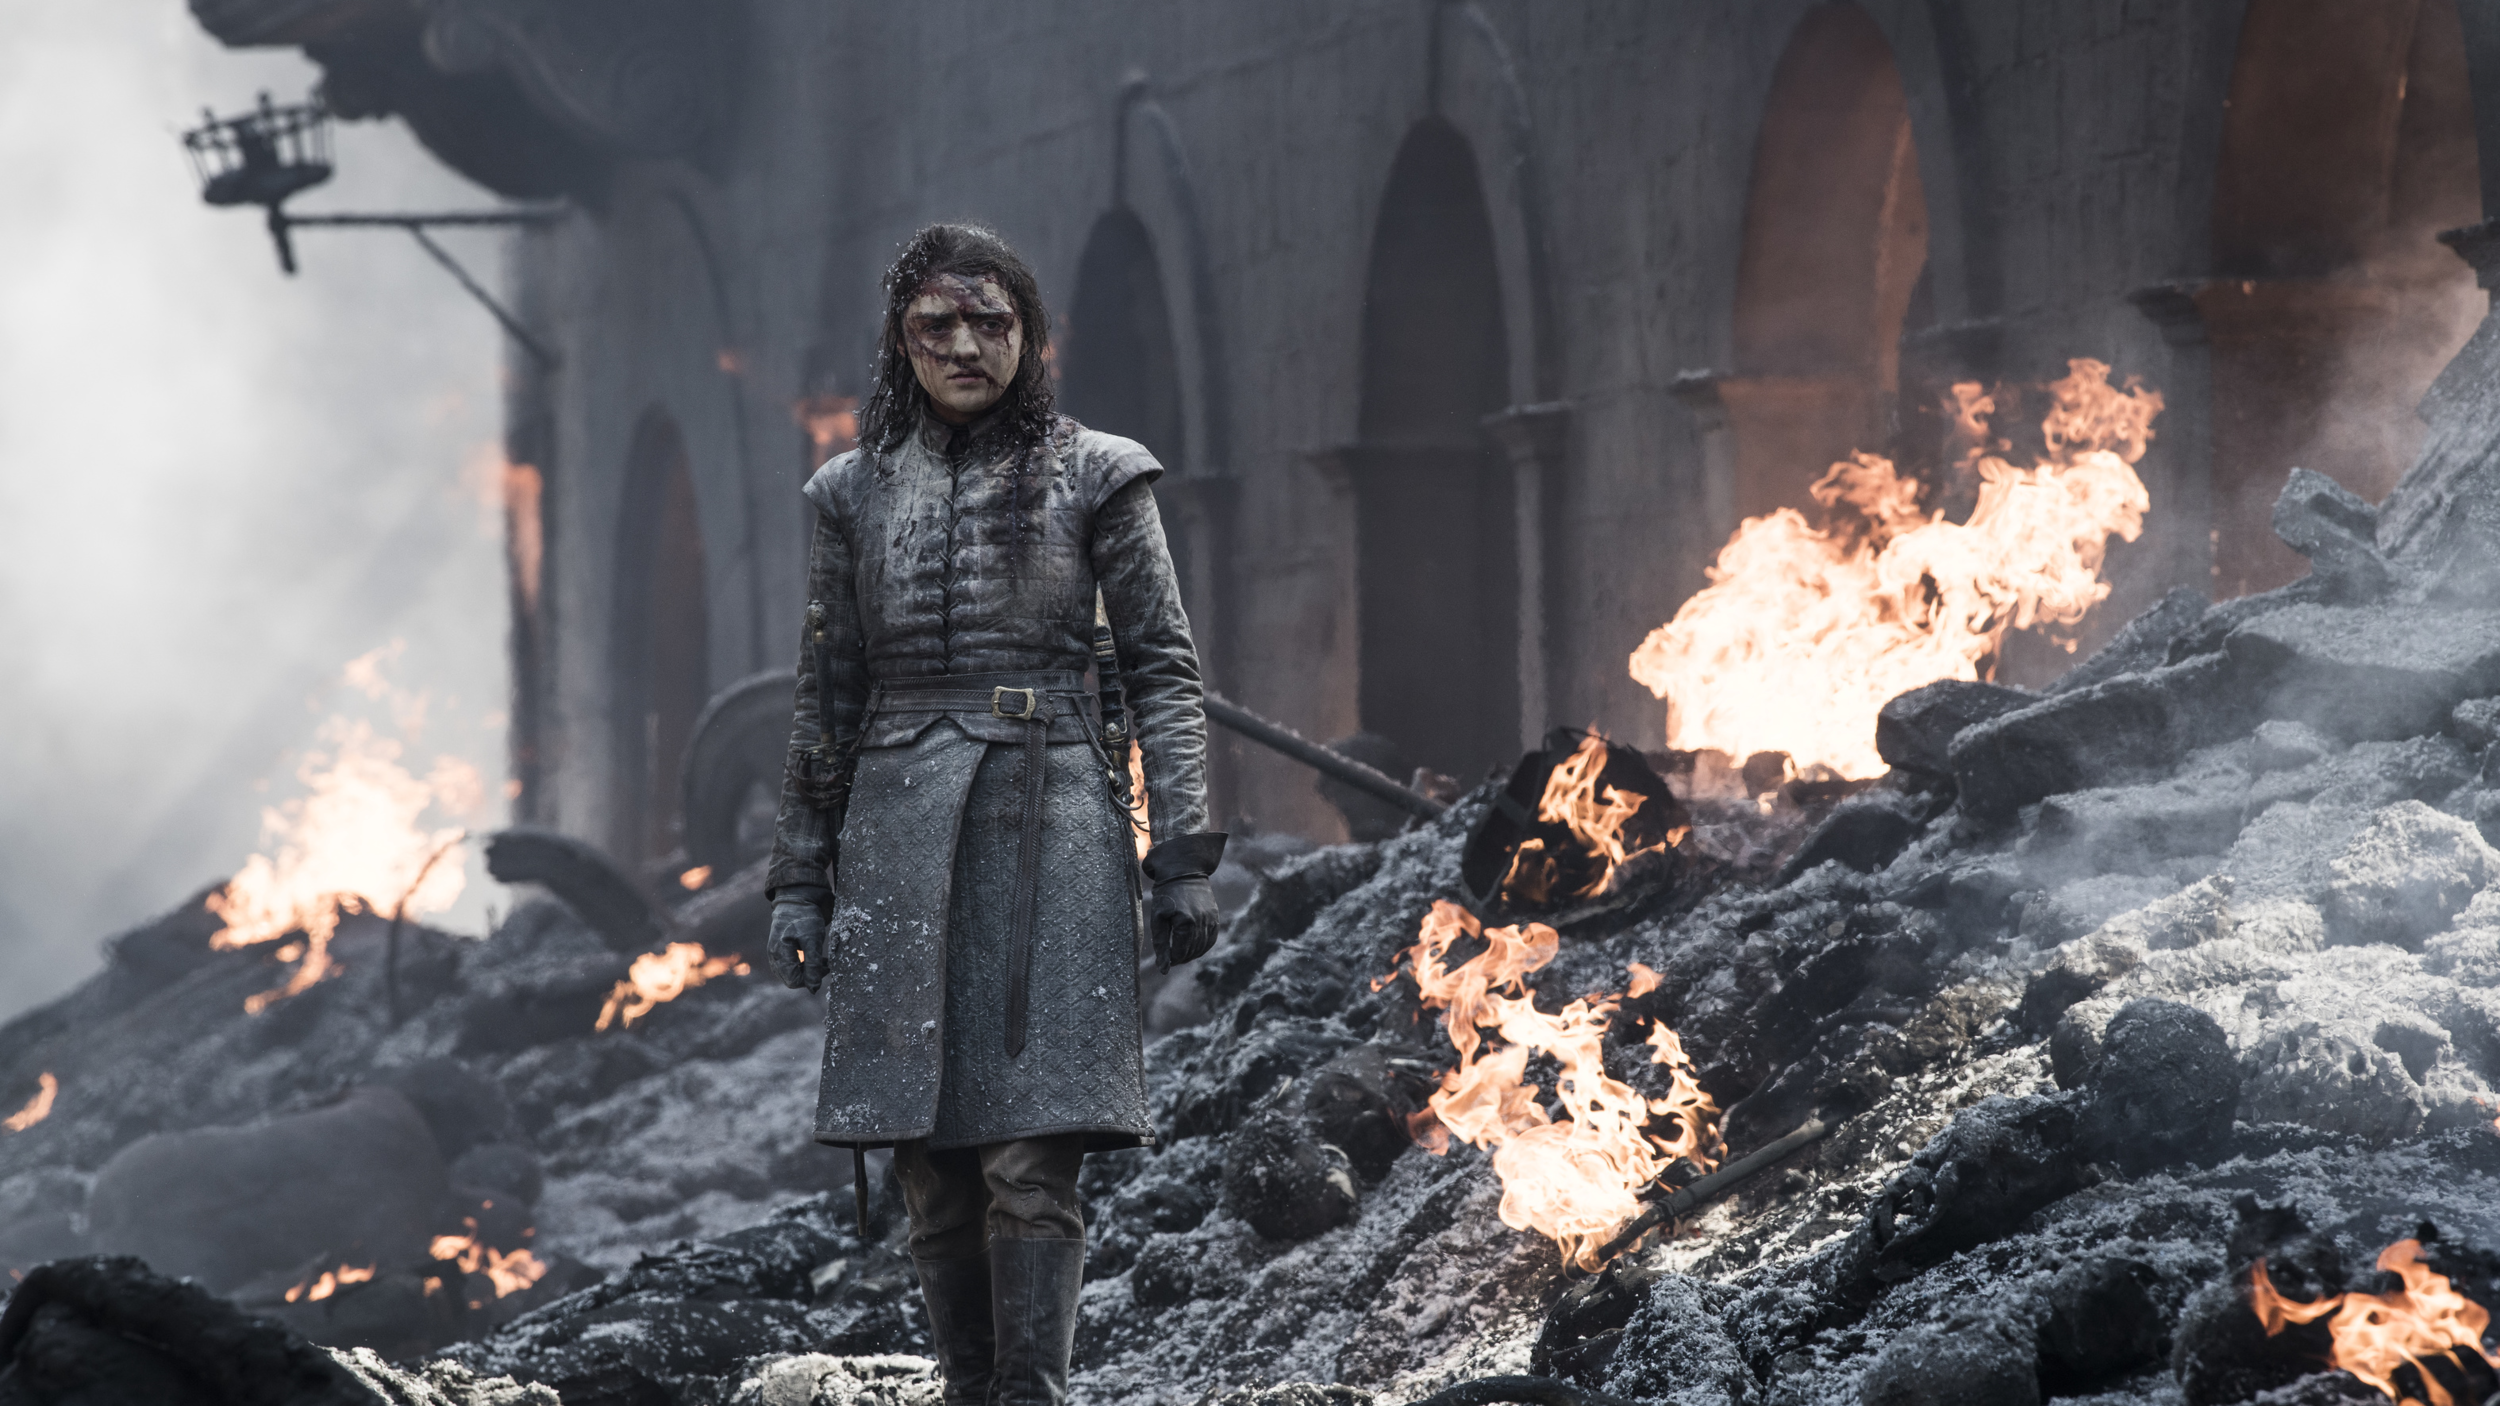 game-of-thrones-series-finale-preview-shows-a-city-of-ash_qu4j.png